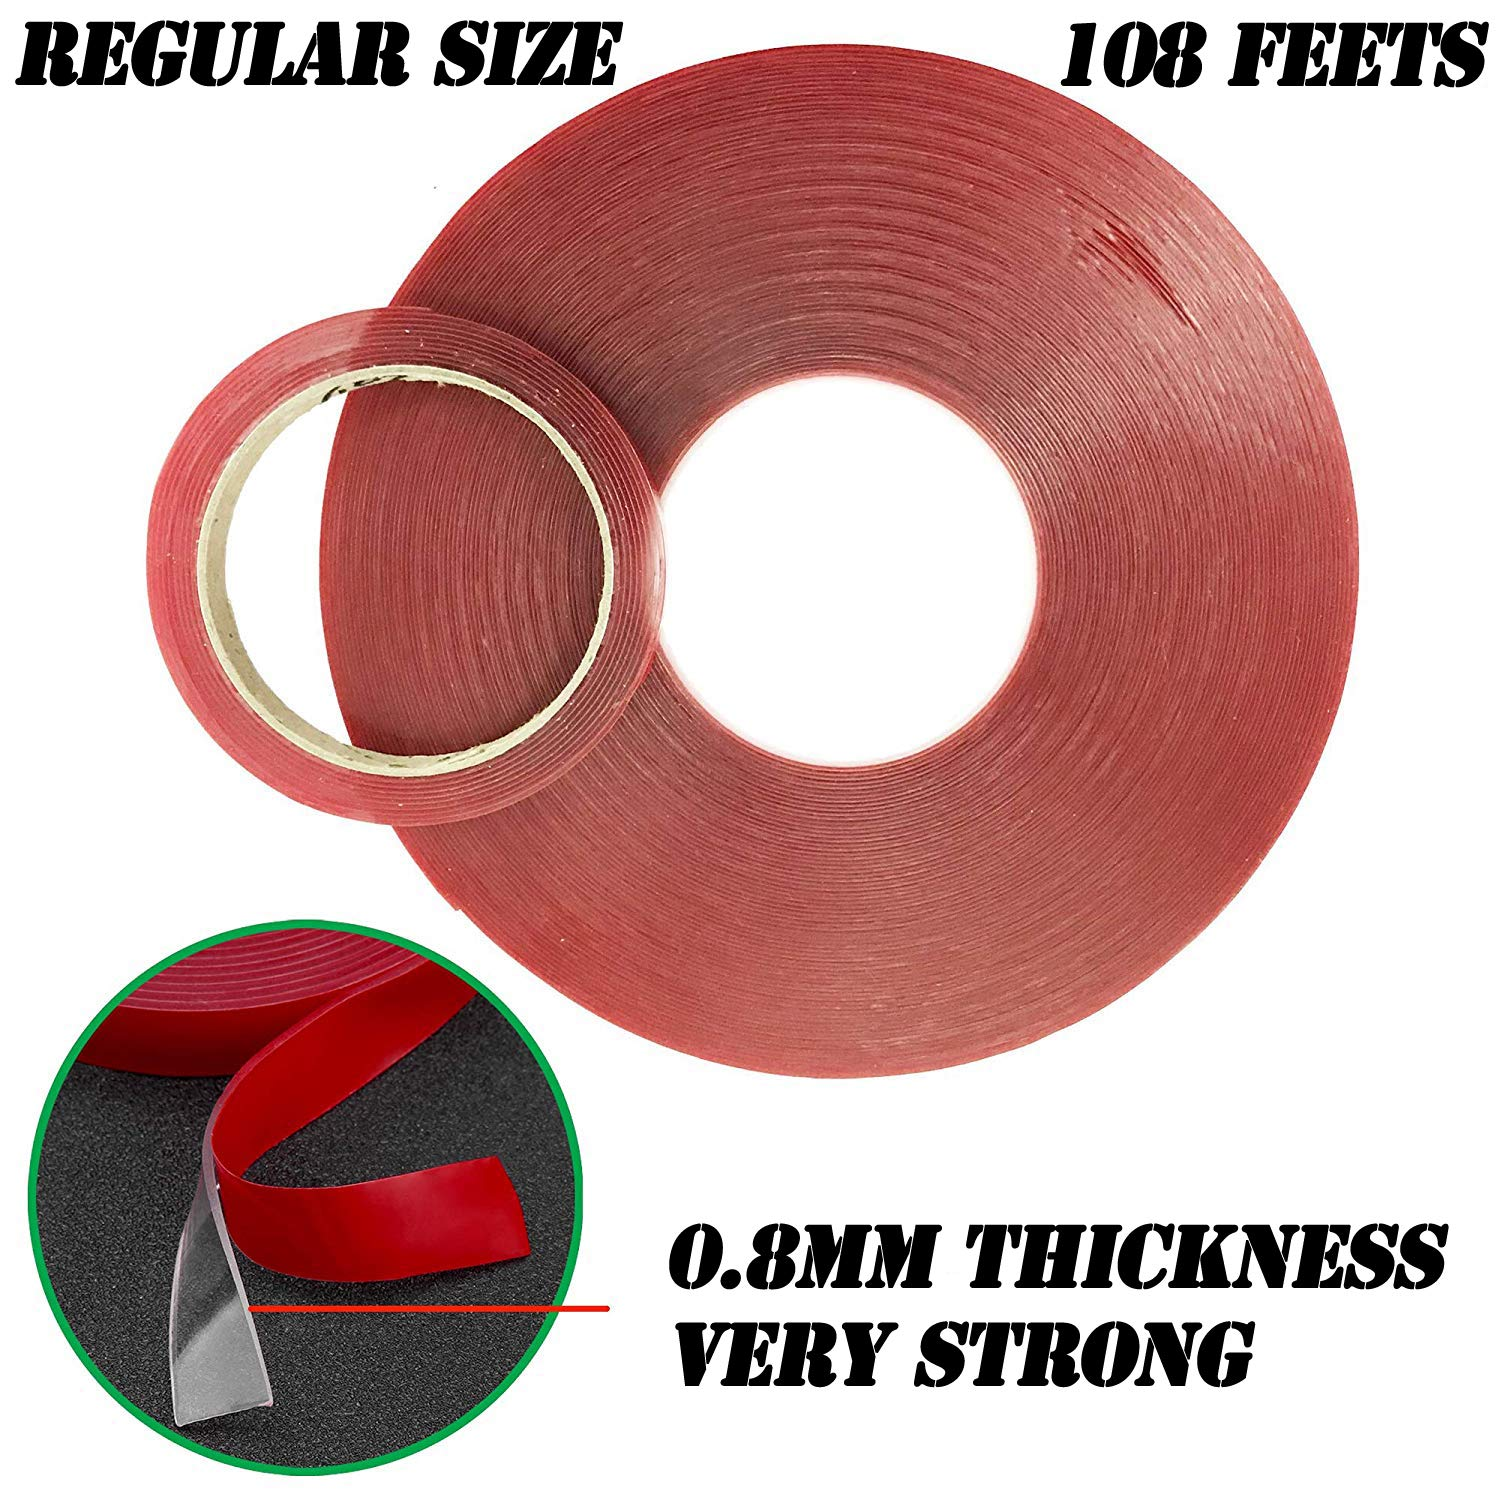 LLP Double Sided Tape, Acrylic Mounting Tape 0.8' Width x 108 Feet Long Weatherproof for Outdoor & Indoor, Removable & Residue-Free, 0.8mm Thick Strong Adhesive